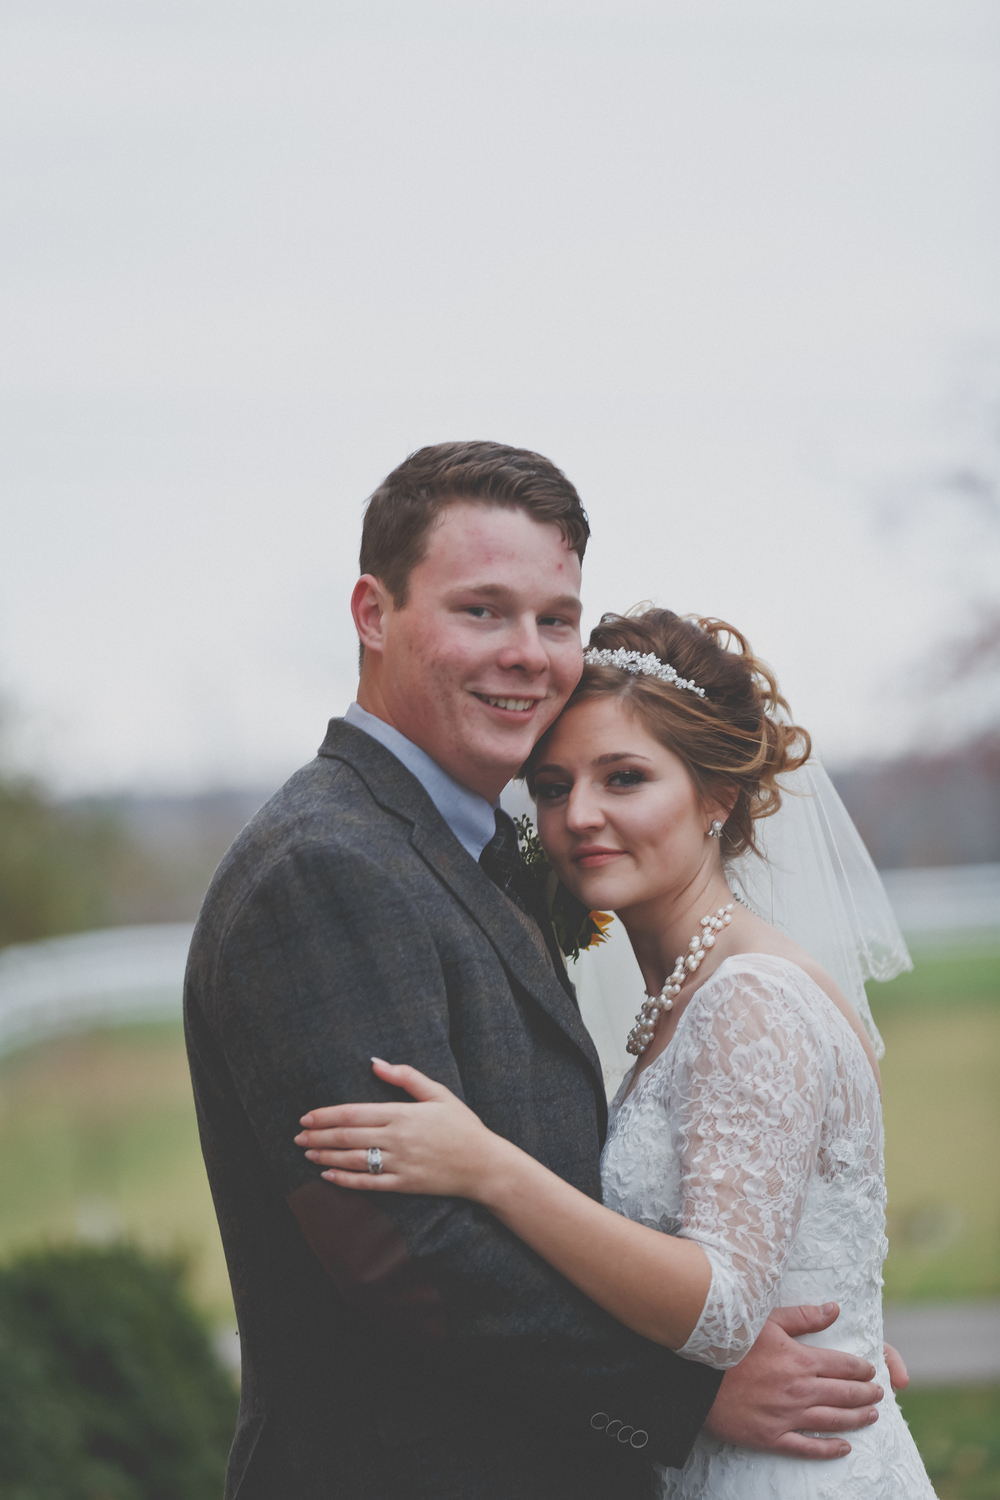 Zingerman's Cornman Farm Intimate Wedding - Danielle and Cody